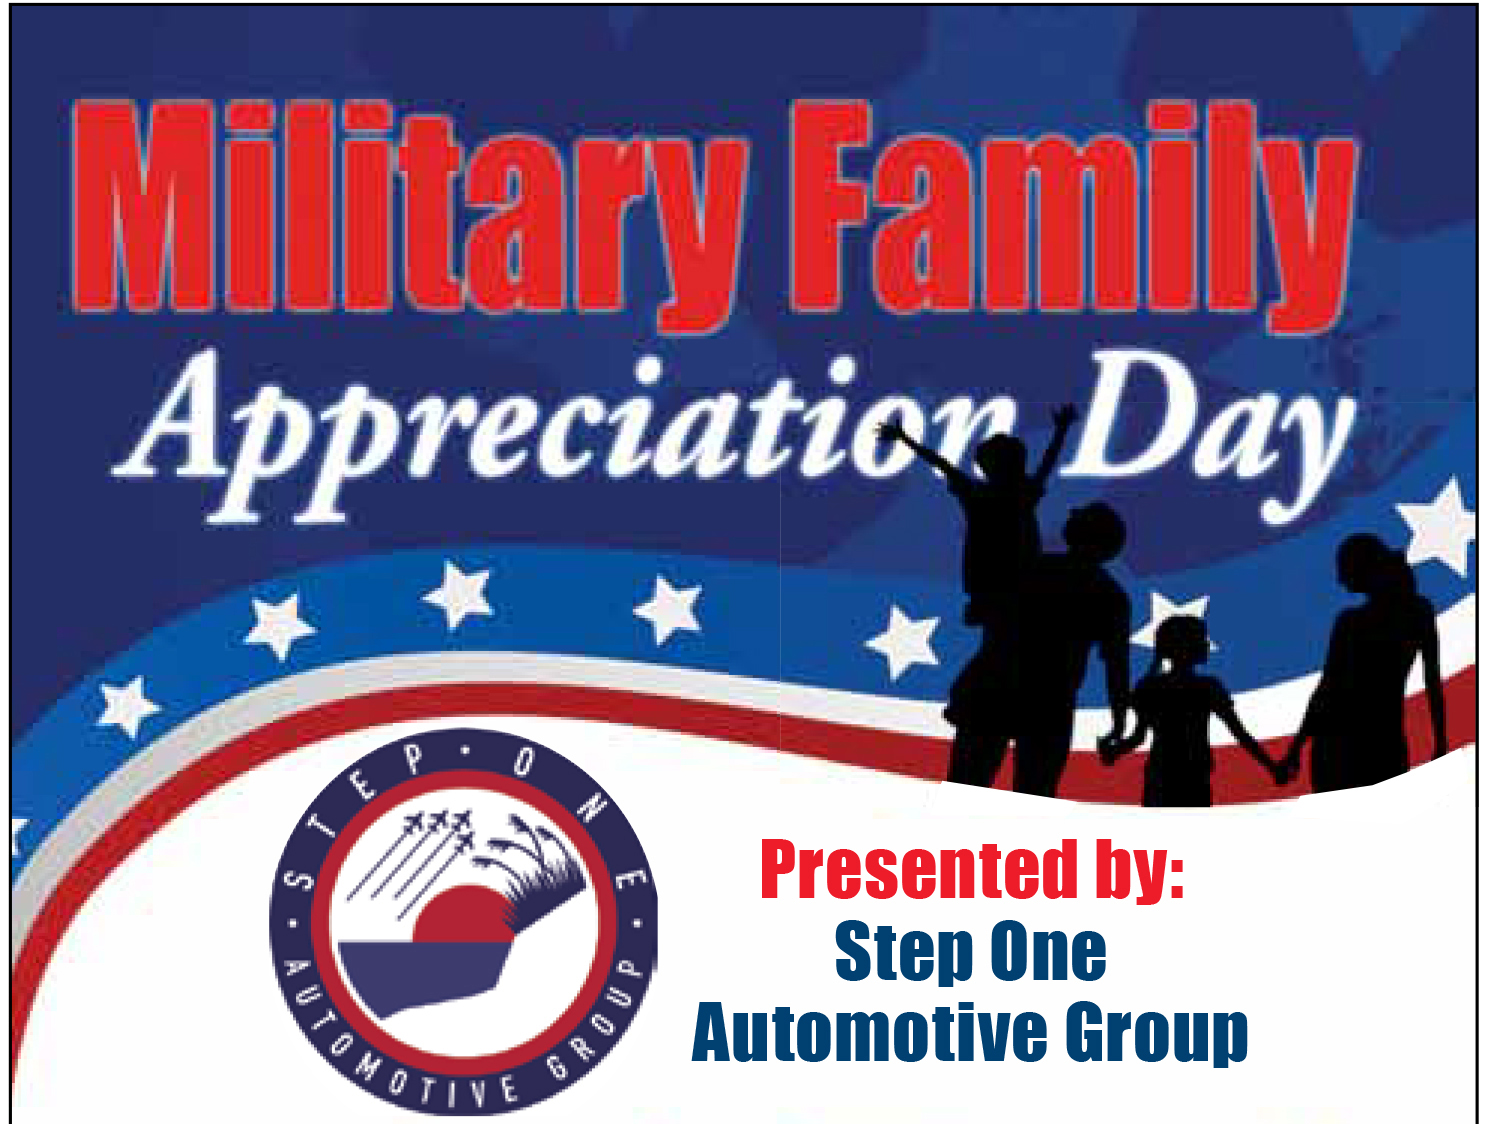 Military Family Appreciation Day